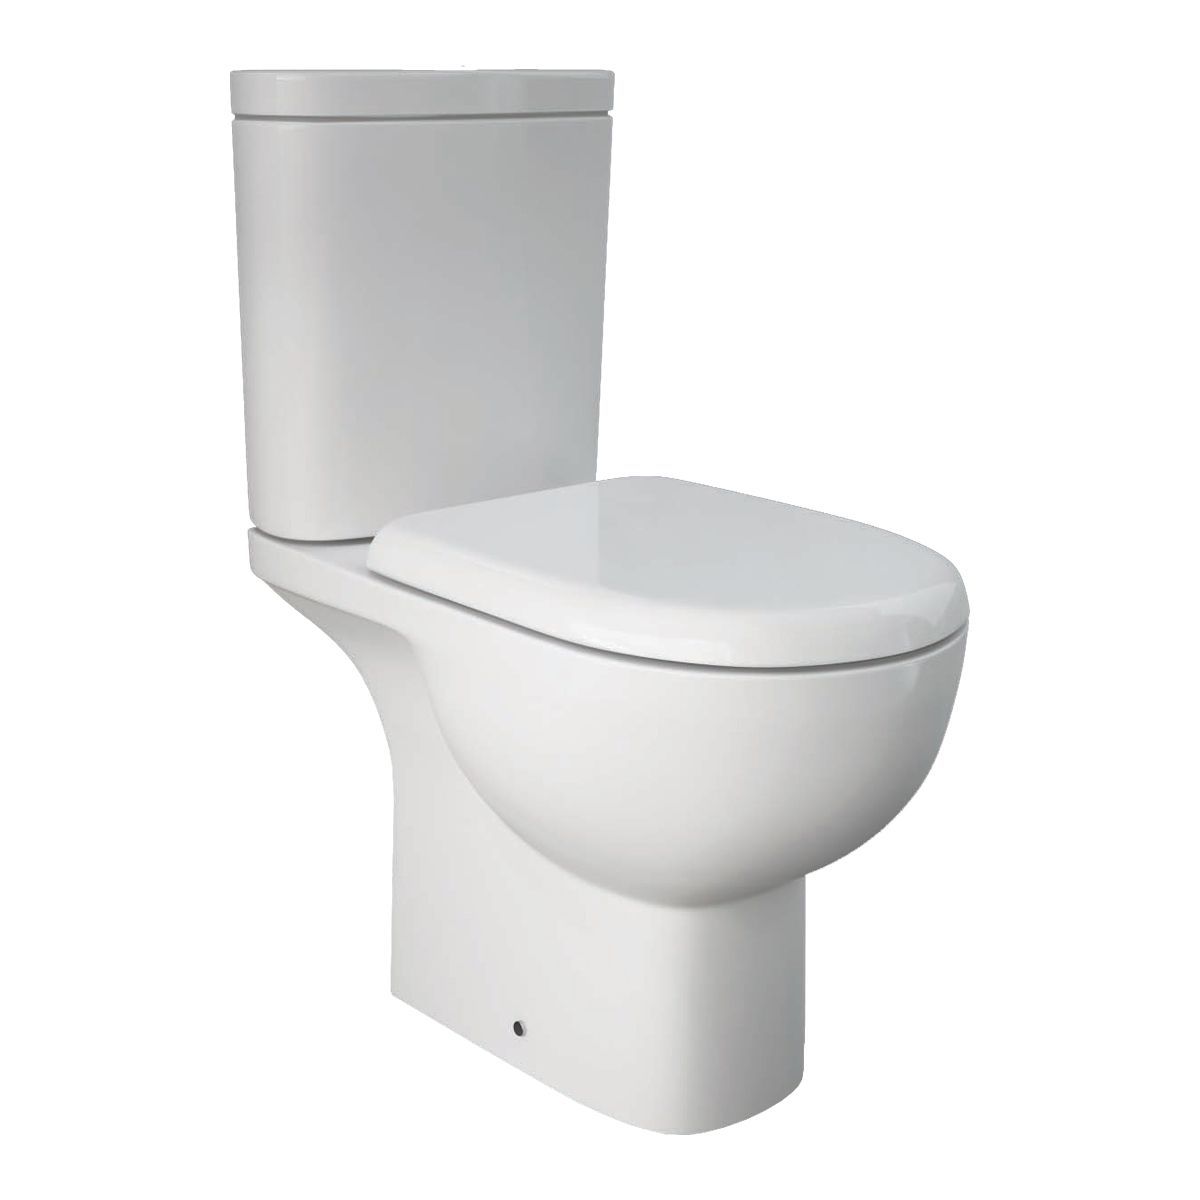 RAK Tonique Close Coupled Open Back Toilet